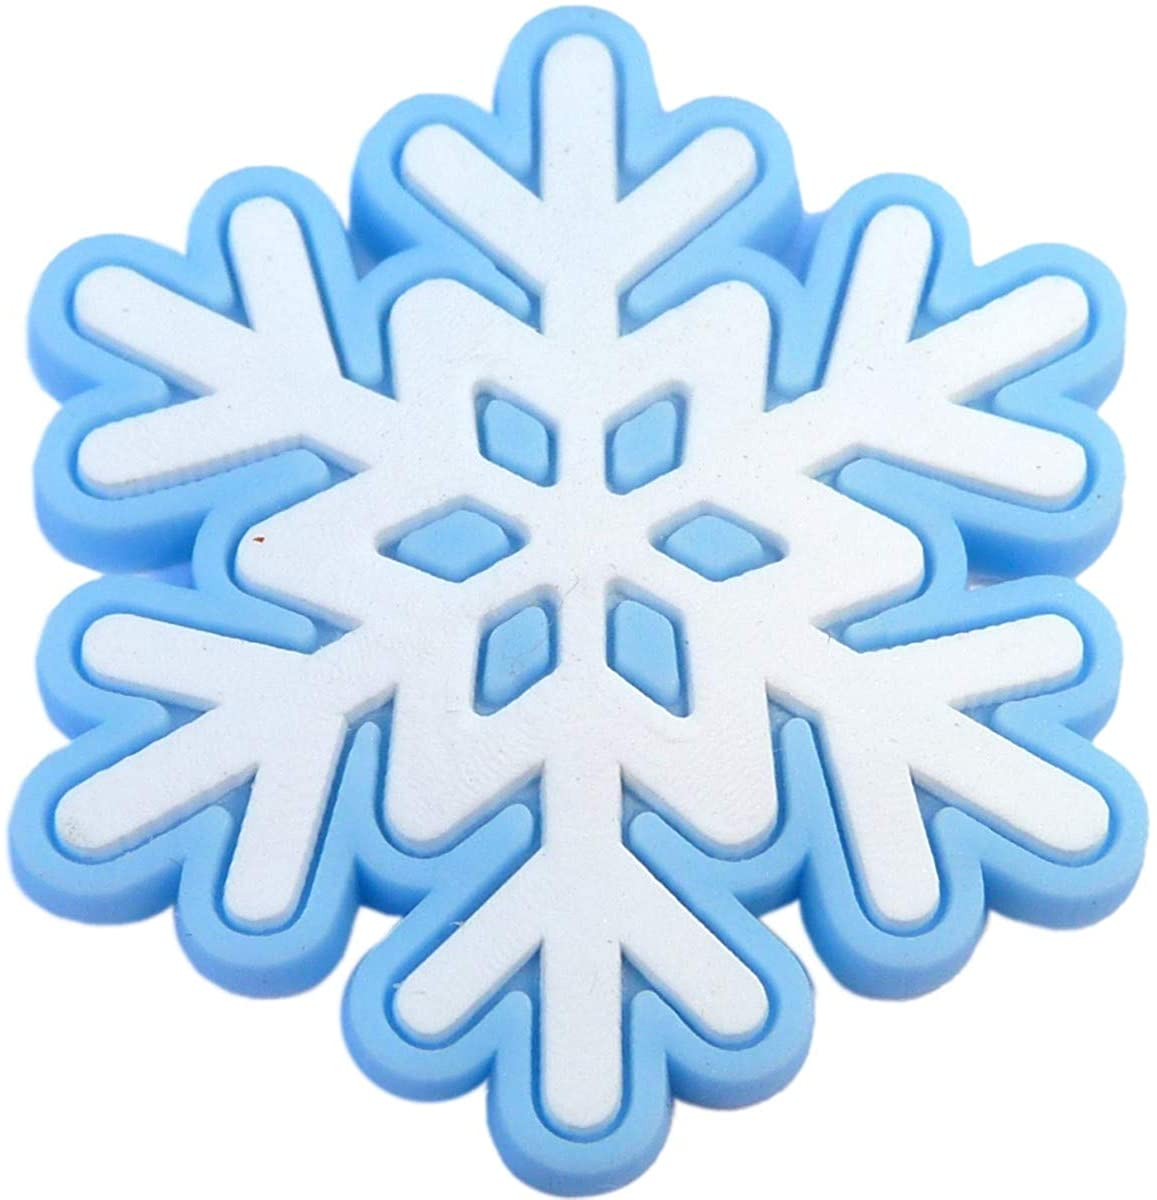 Snowflake Rubber Charm for Wristbands and Shoes